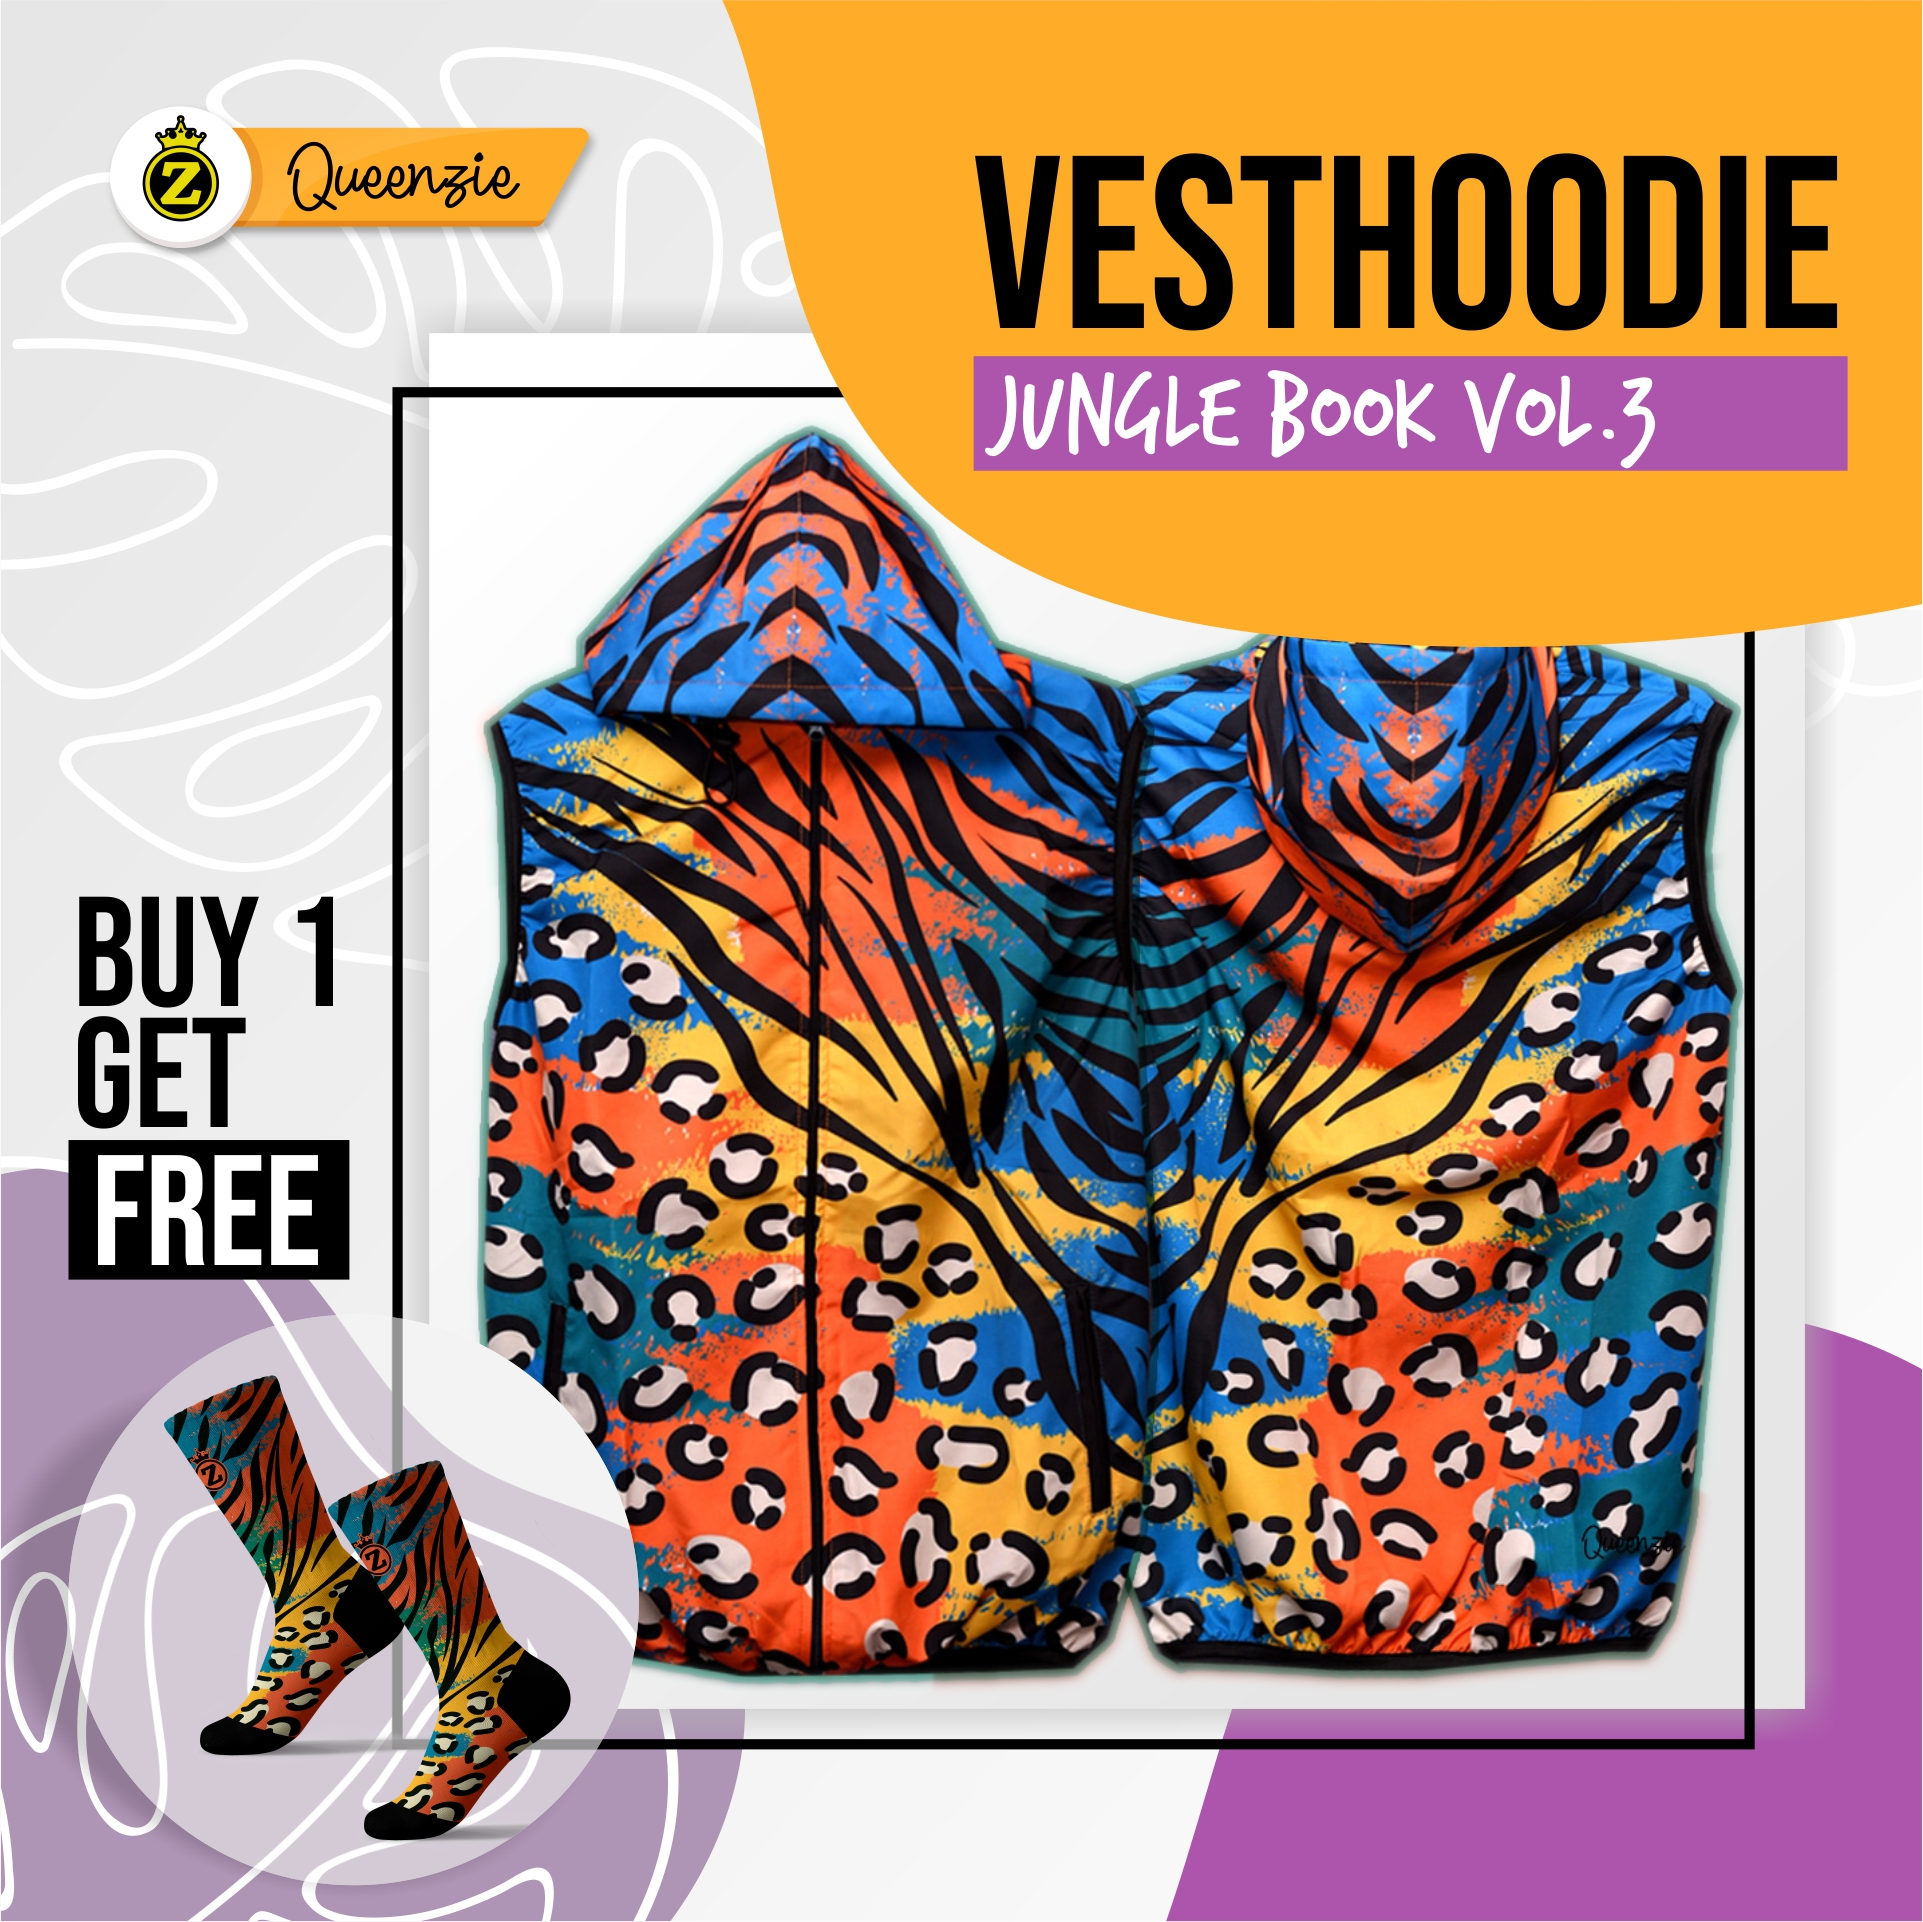 Vesthoodie Jungle Book Vol3 -Ziproduction